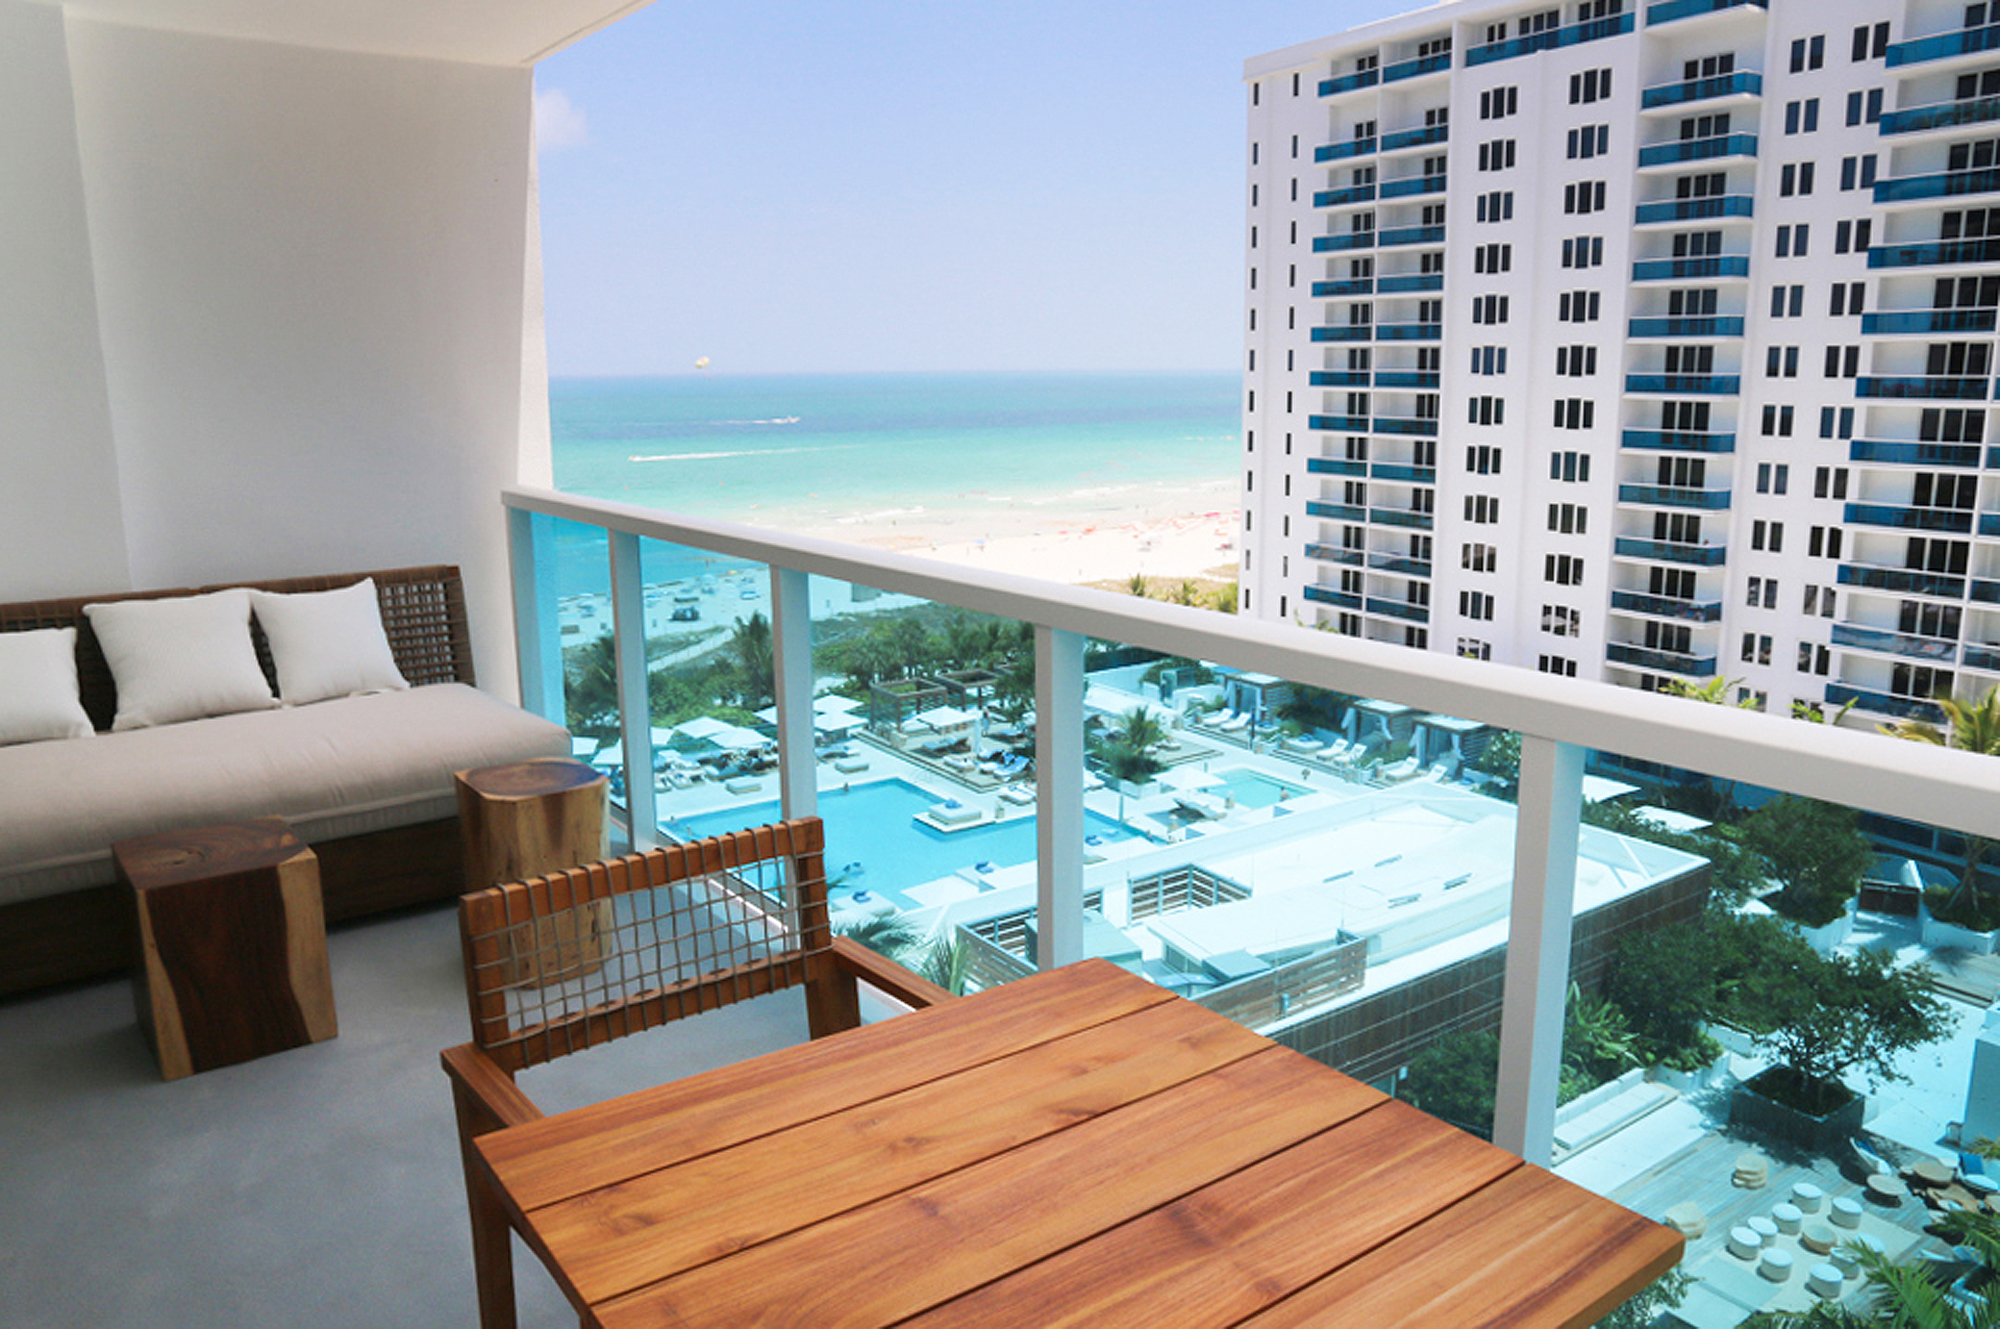 1 hotel resident suite ocean and pool view balcony 2341 collins